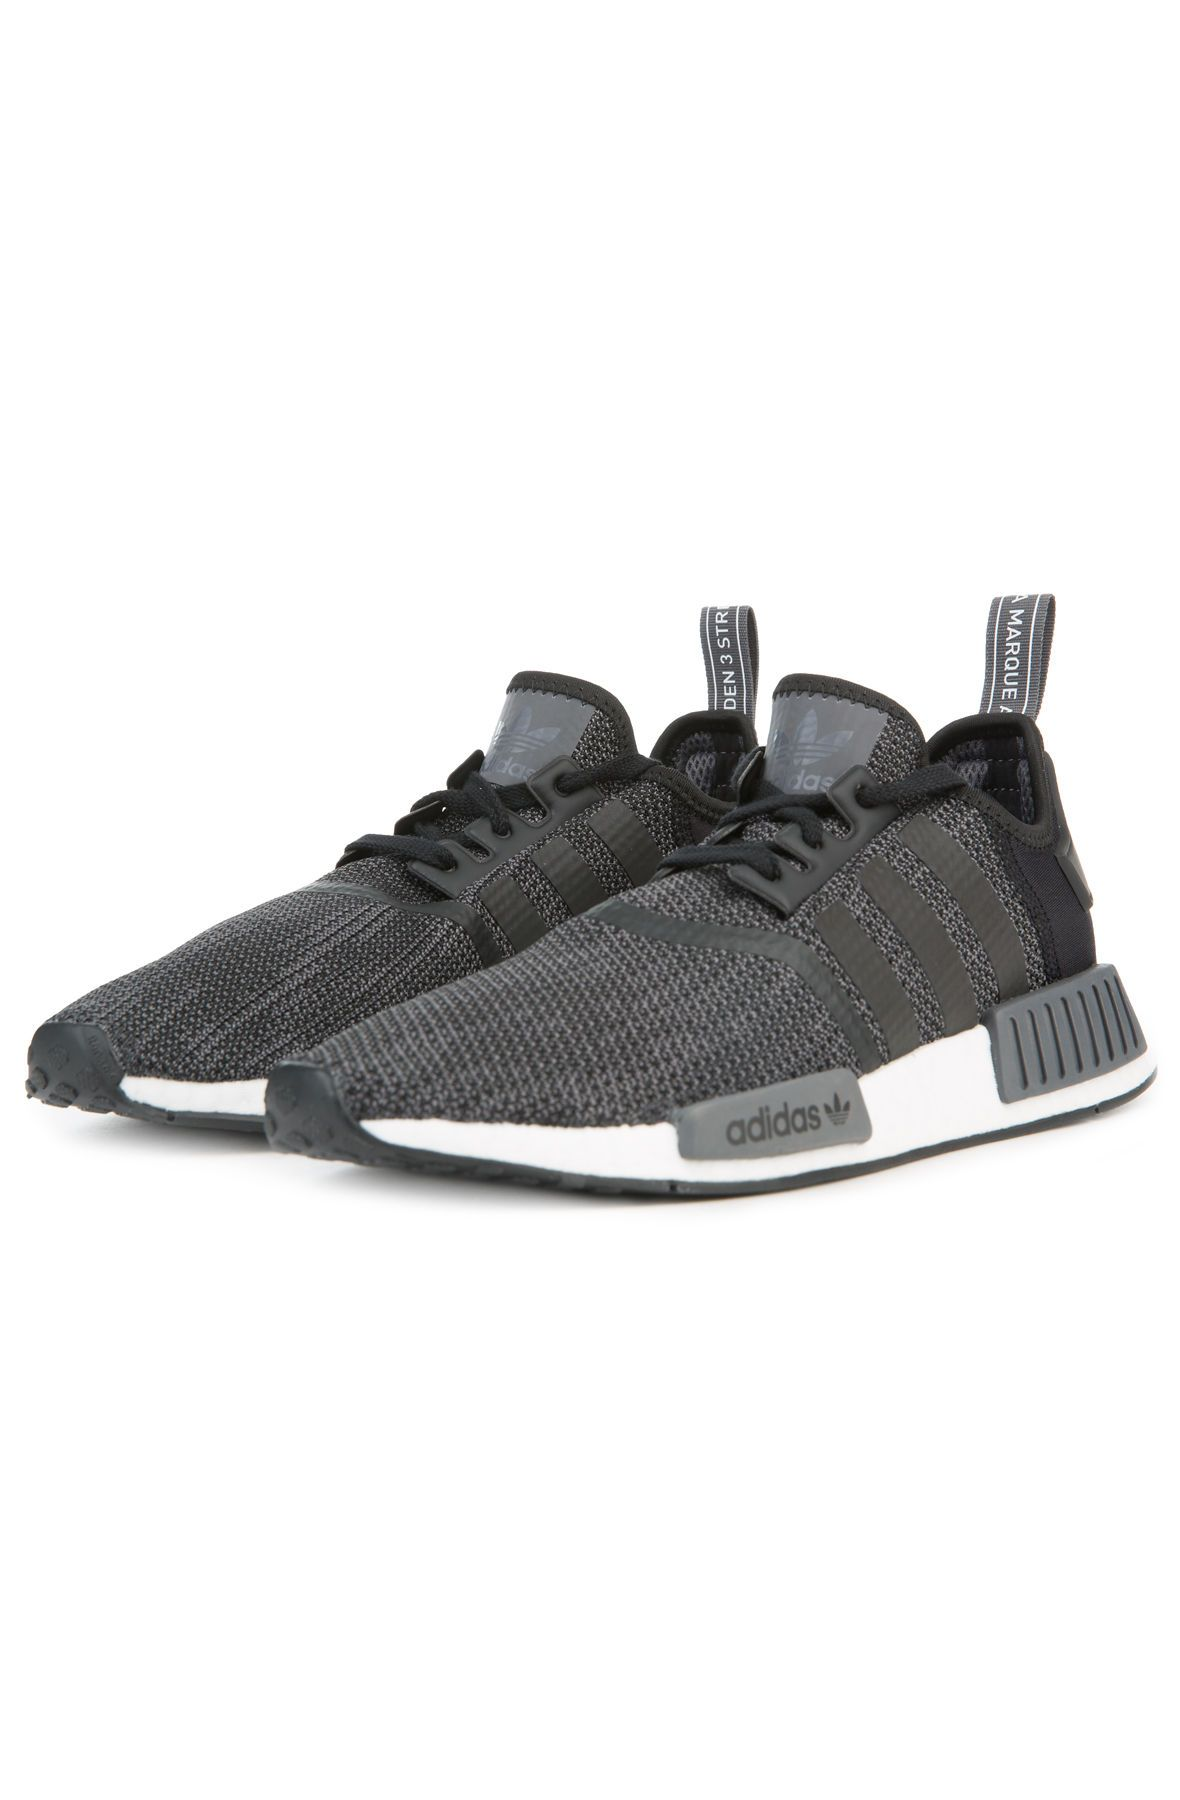 super popular c824b aa380 The Men's NMD R1 in Core Black, Carbon and White Black